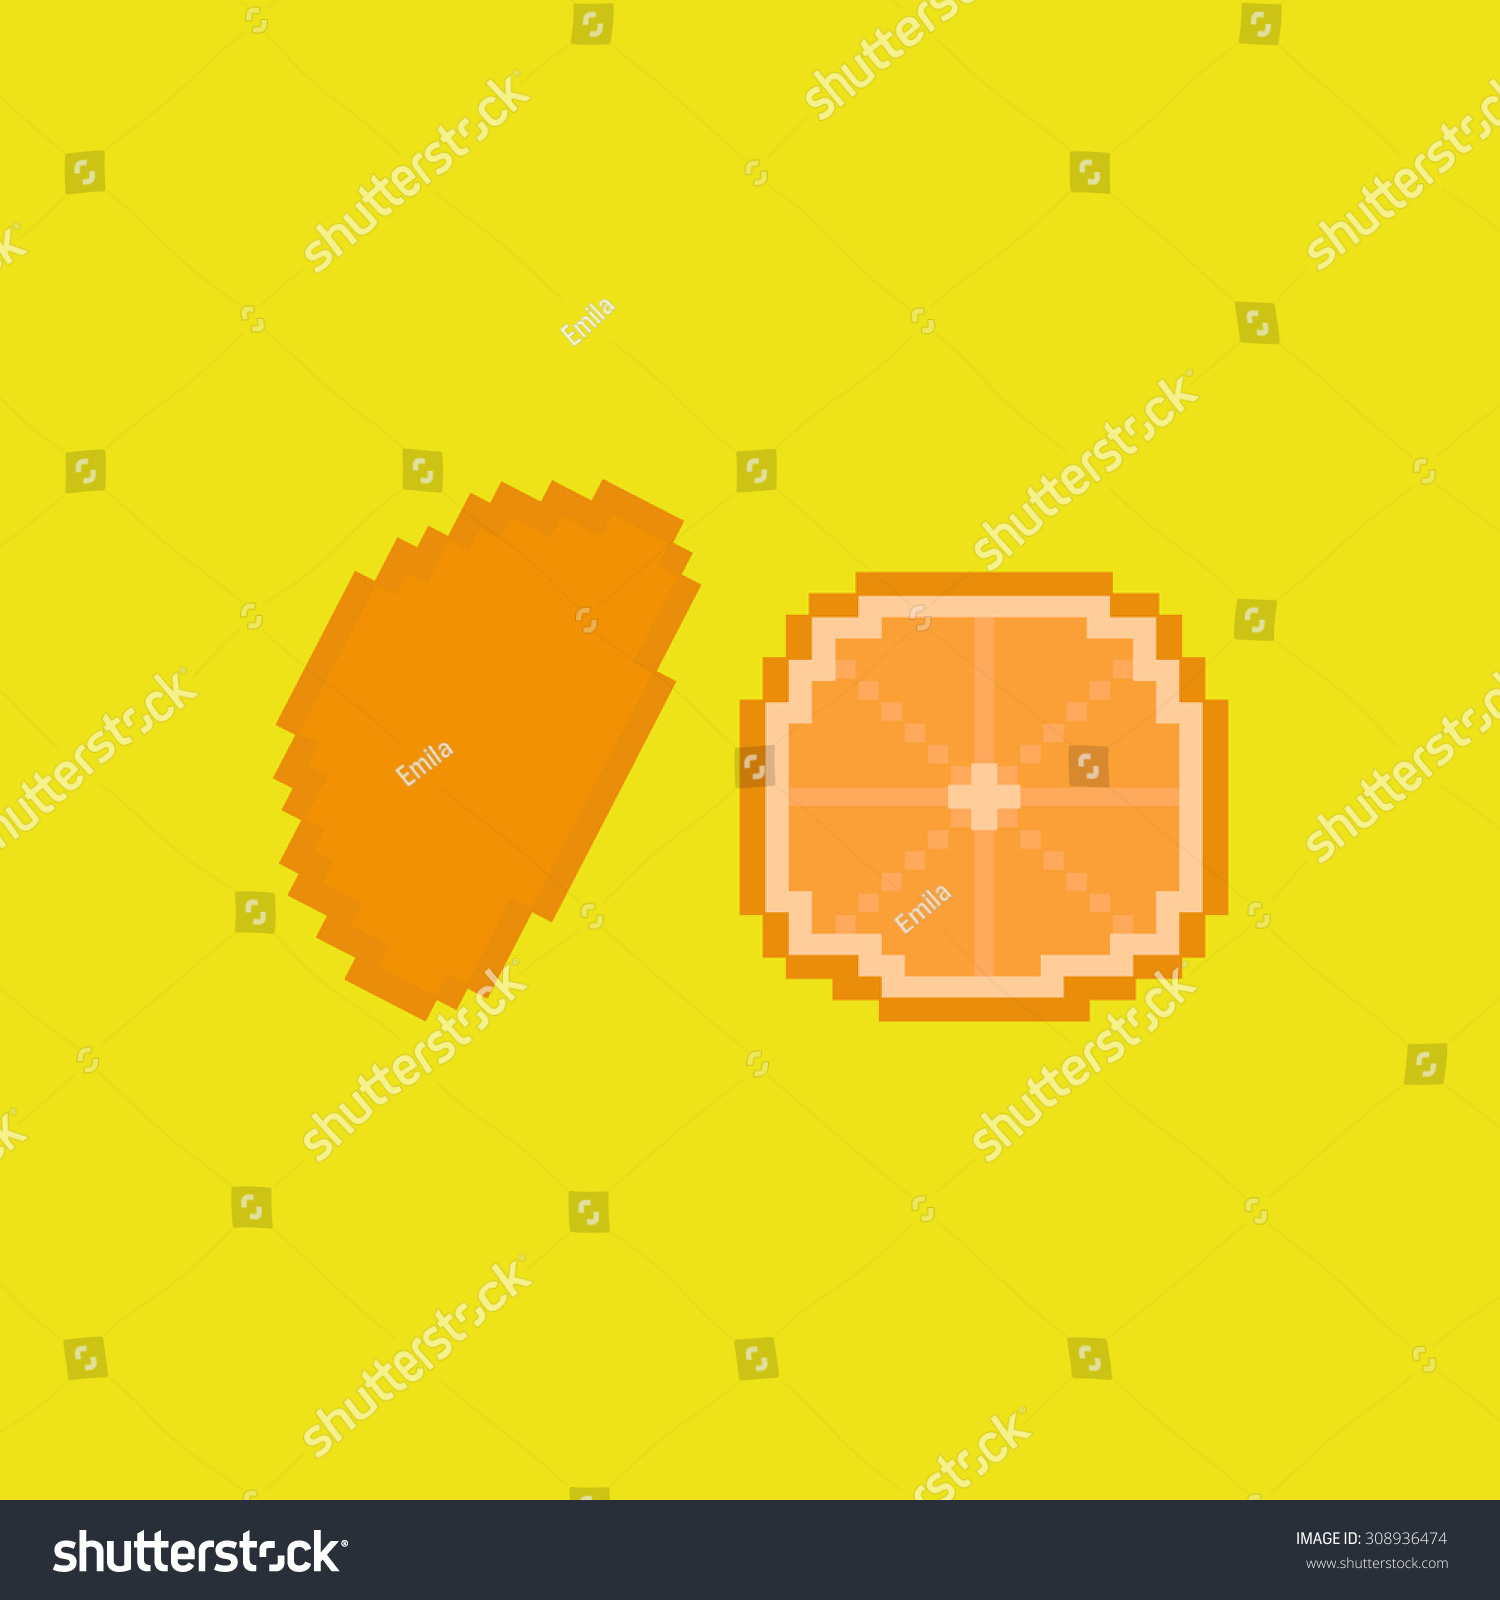 Orange Fruit Pixel Art Style Stock Vector Royalty Free